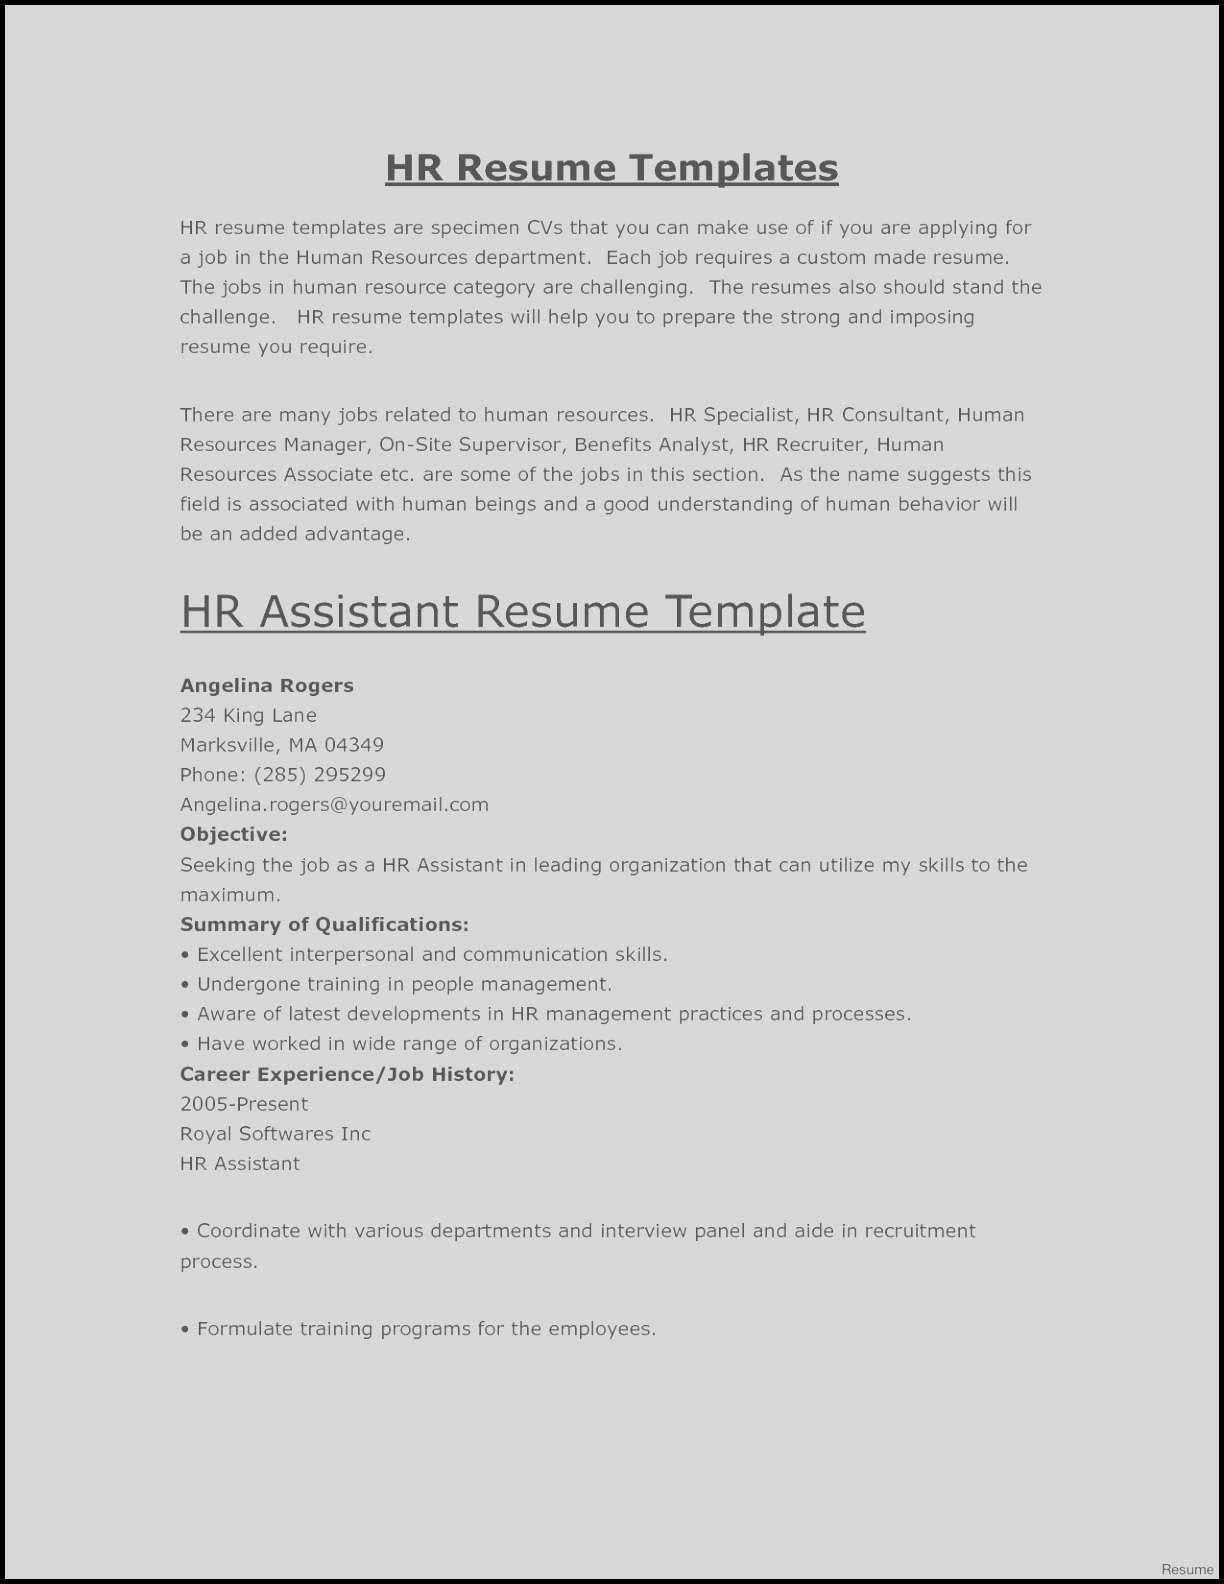 Project Management Resumes - Skills Used for Resume Cto Resume Project Management Resume